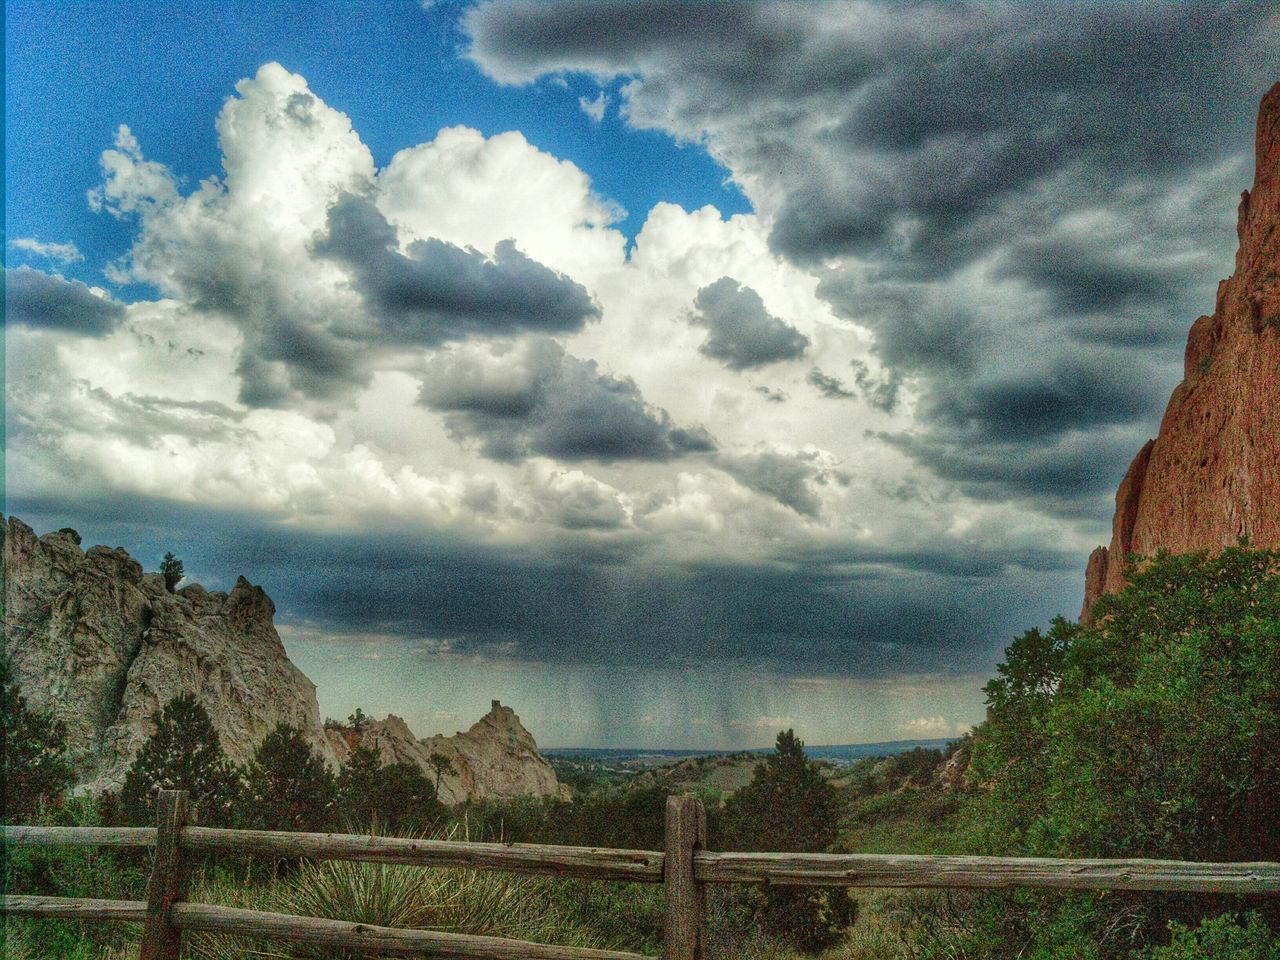 Storm Clouds Stormy Weather Clouds Garden Of The Gods Colorado Colorado Springs Rain Clouds Rain Colorful Fences Wood Fence Dramatic Sky Turmoil Summer Storms Samsungphotography Samsung Galaxy Note 3Mobilephotography